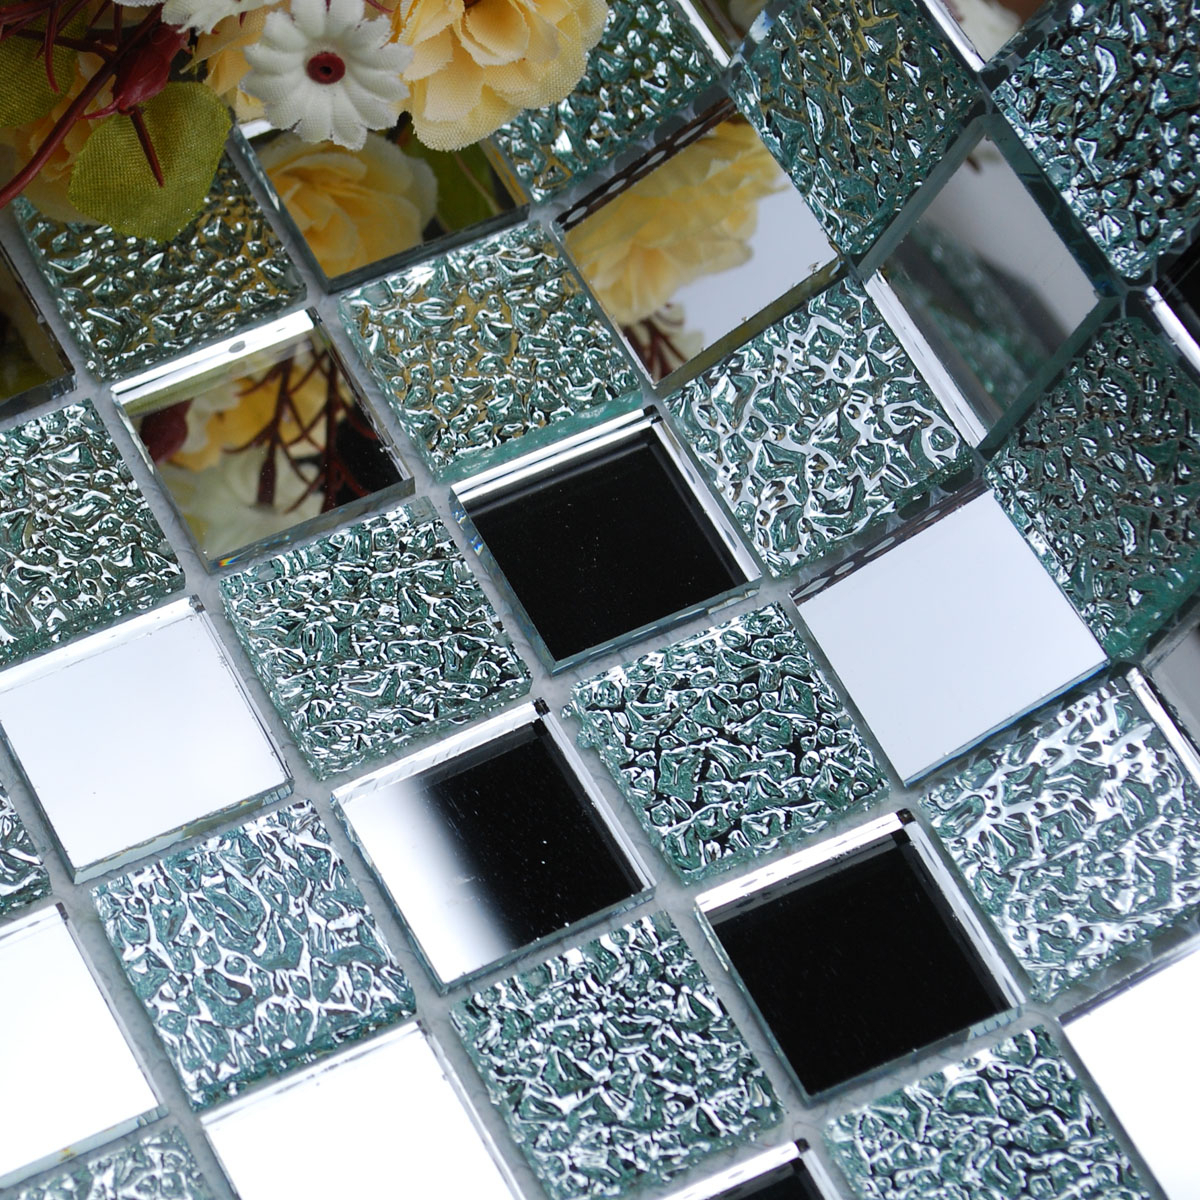 Glass Mosaic Wall Mirrors Inside Well Known Wholesale Mirror Tile Squares Blue Bathroom Mirrored Wall Tile Backsplash 1 Inch Glass Mosaic Tiles Decorative (View 13 of 20)